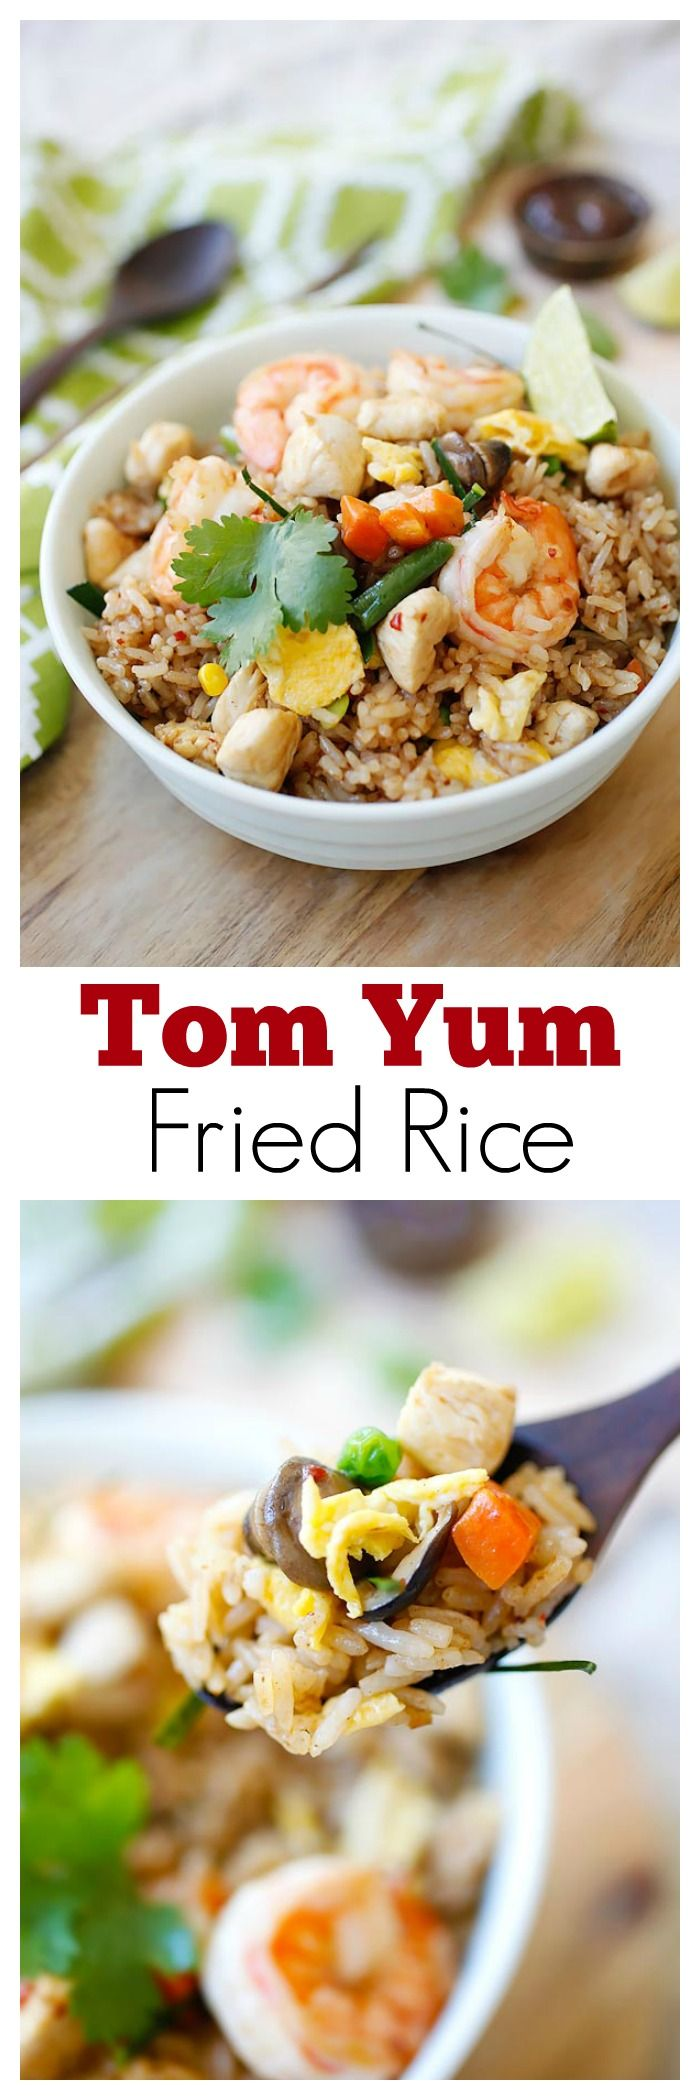 {Thailand} Tom Yum Fried Rice – your favorite Tom Yum Flavor in a fried rice dish. The most amazing fried rice with exotic flavors that you can't stop eating | rasamalaysia.com